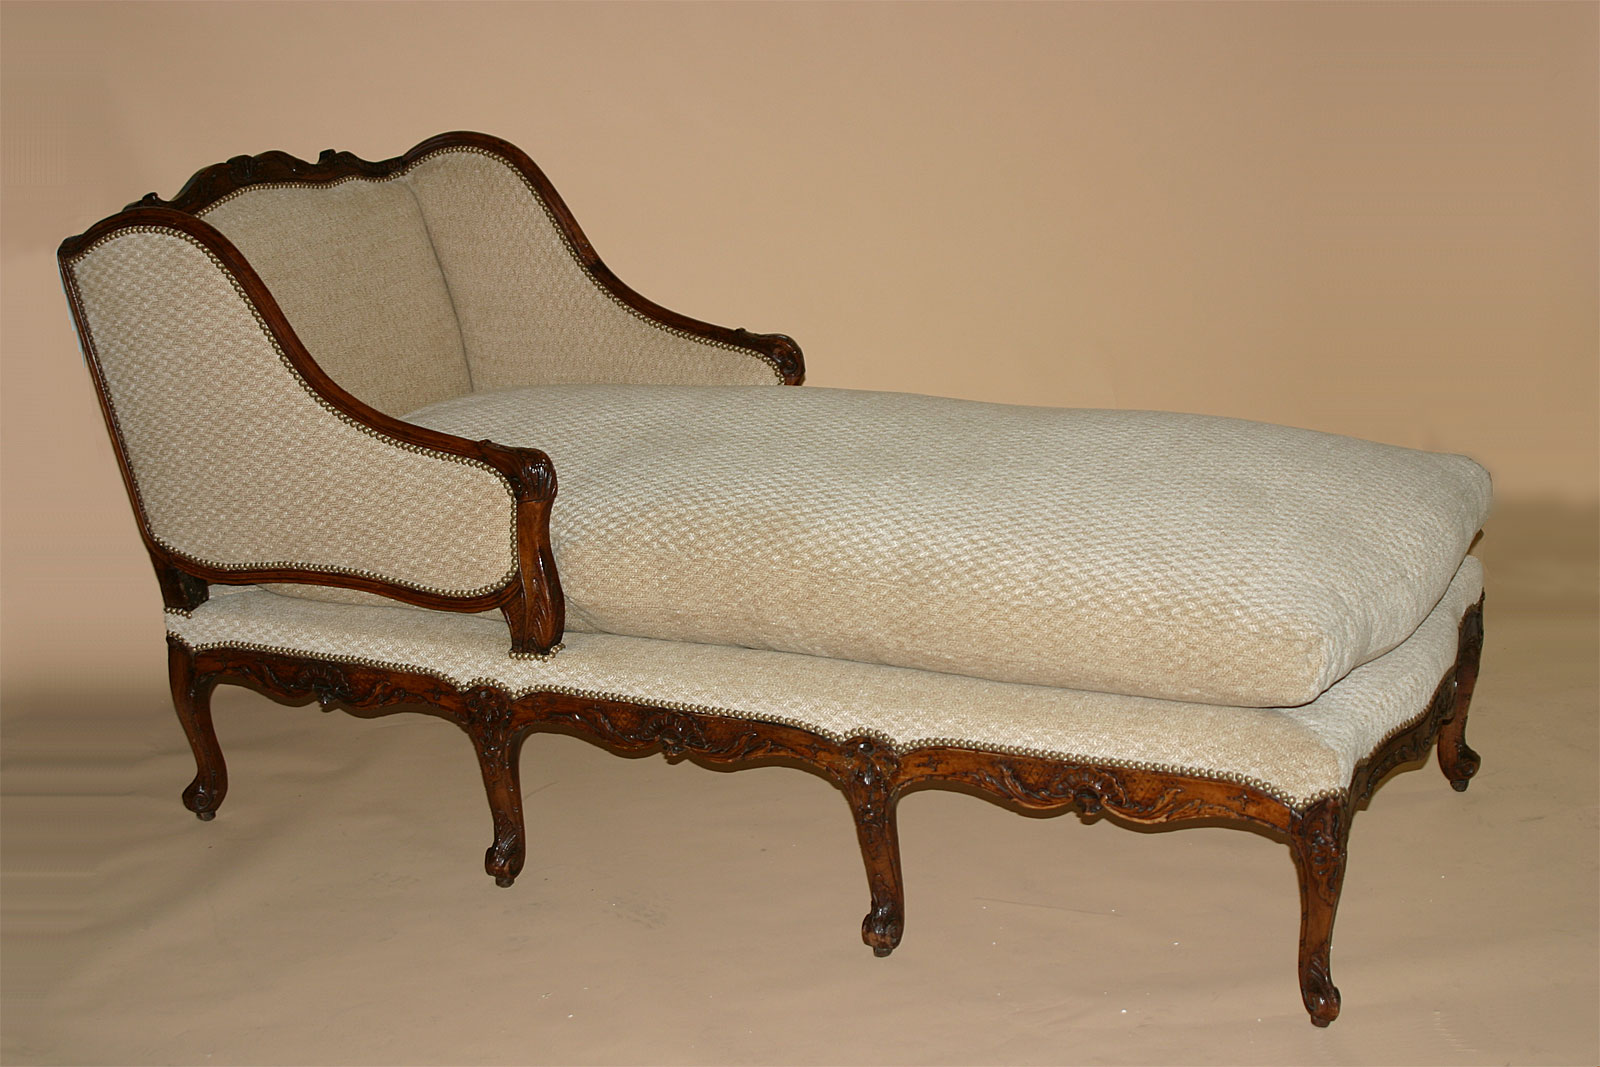 french louis xv period chaise longue for sale antiques